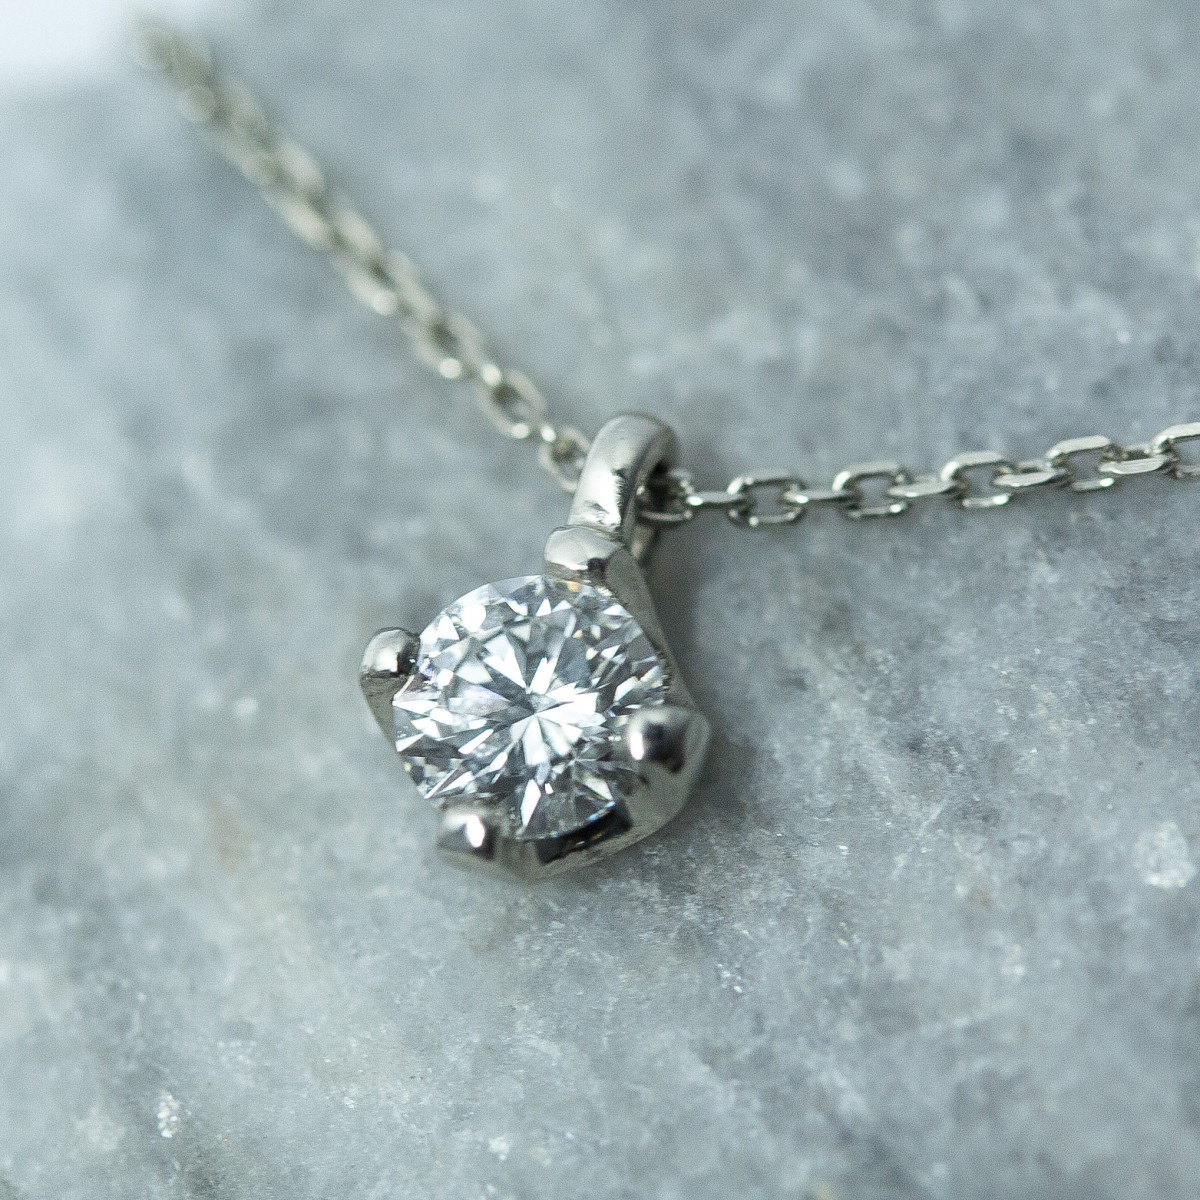 D diamond collection diamond platinum pendant guy wakeling diamond pendant platinum and diamond pendant platinum pendant platinum and diamond chain aloadofball